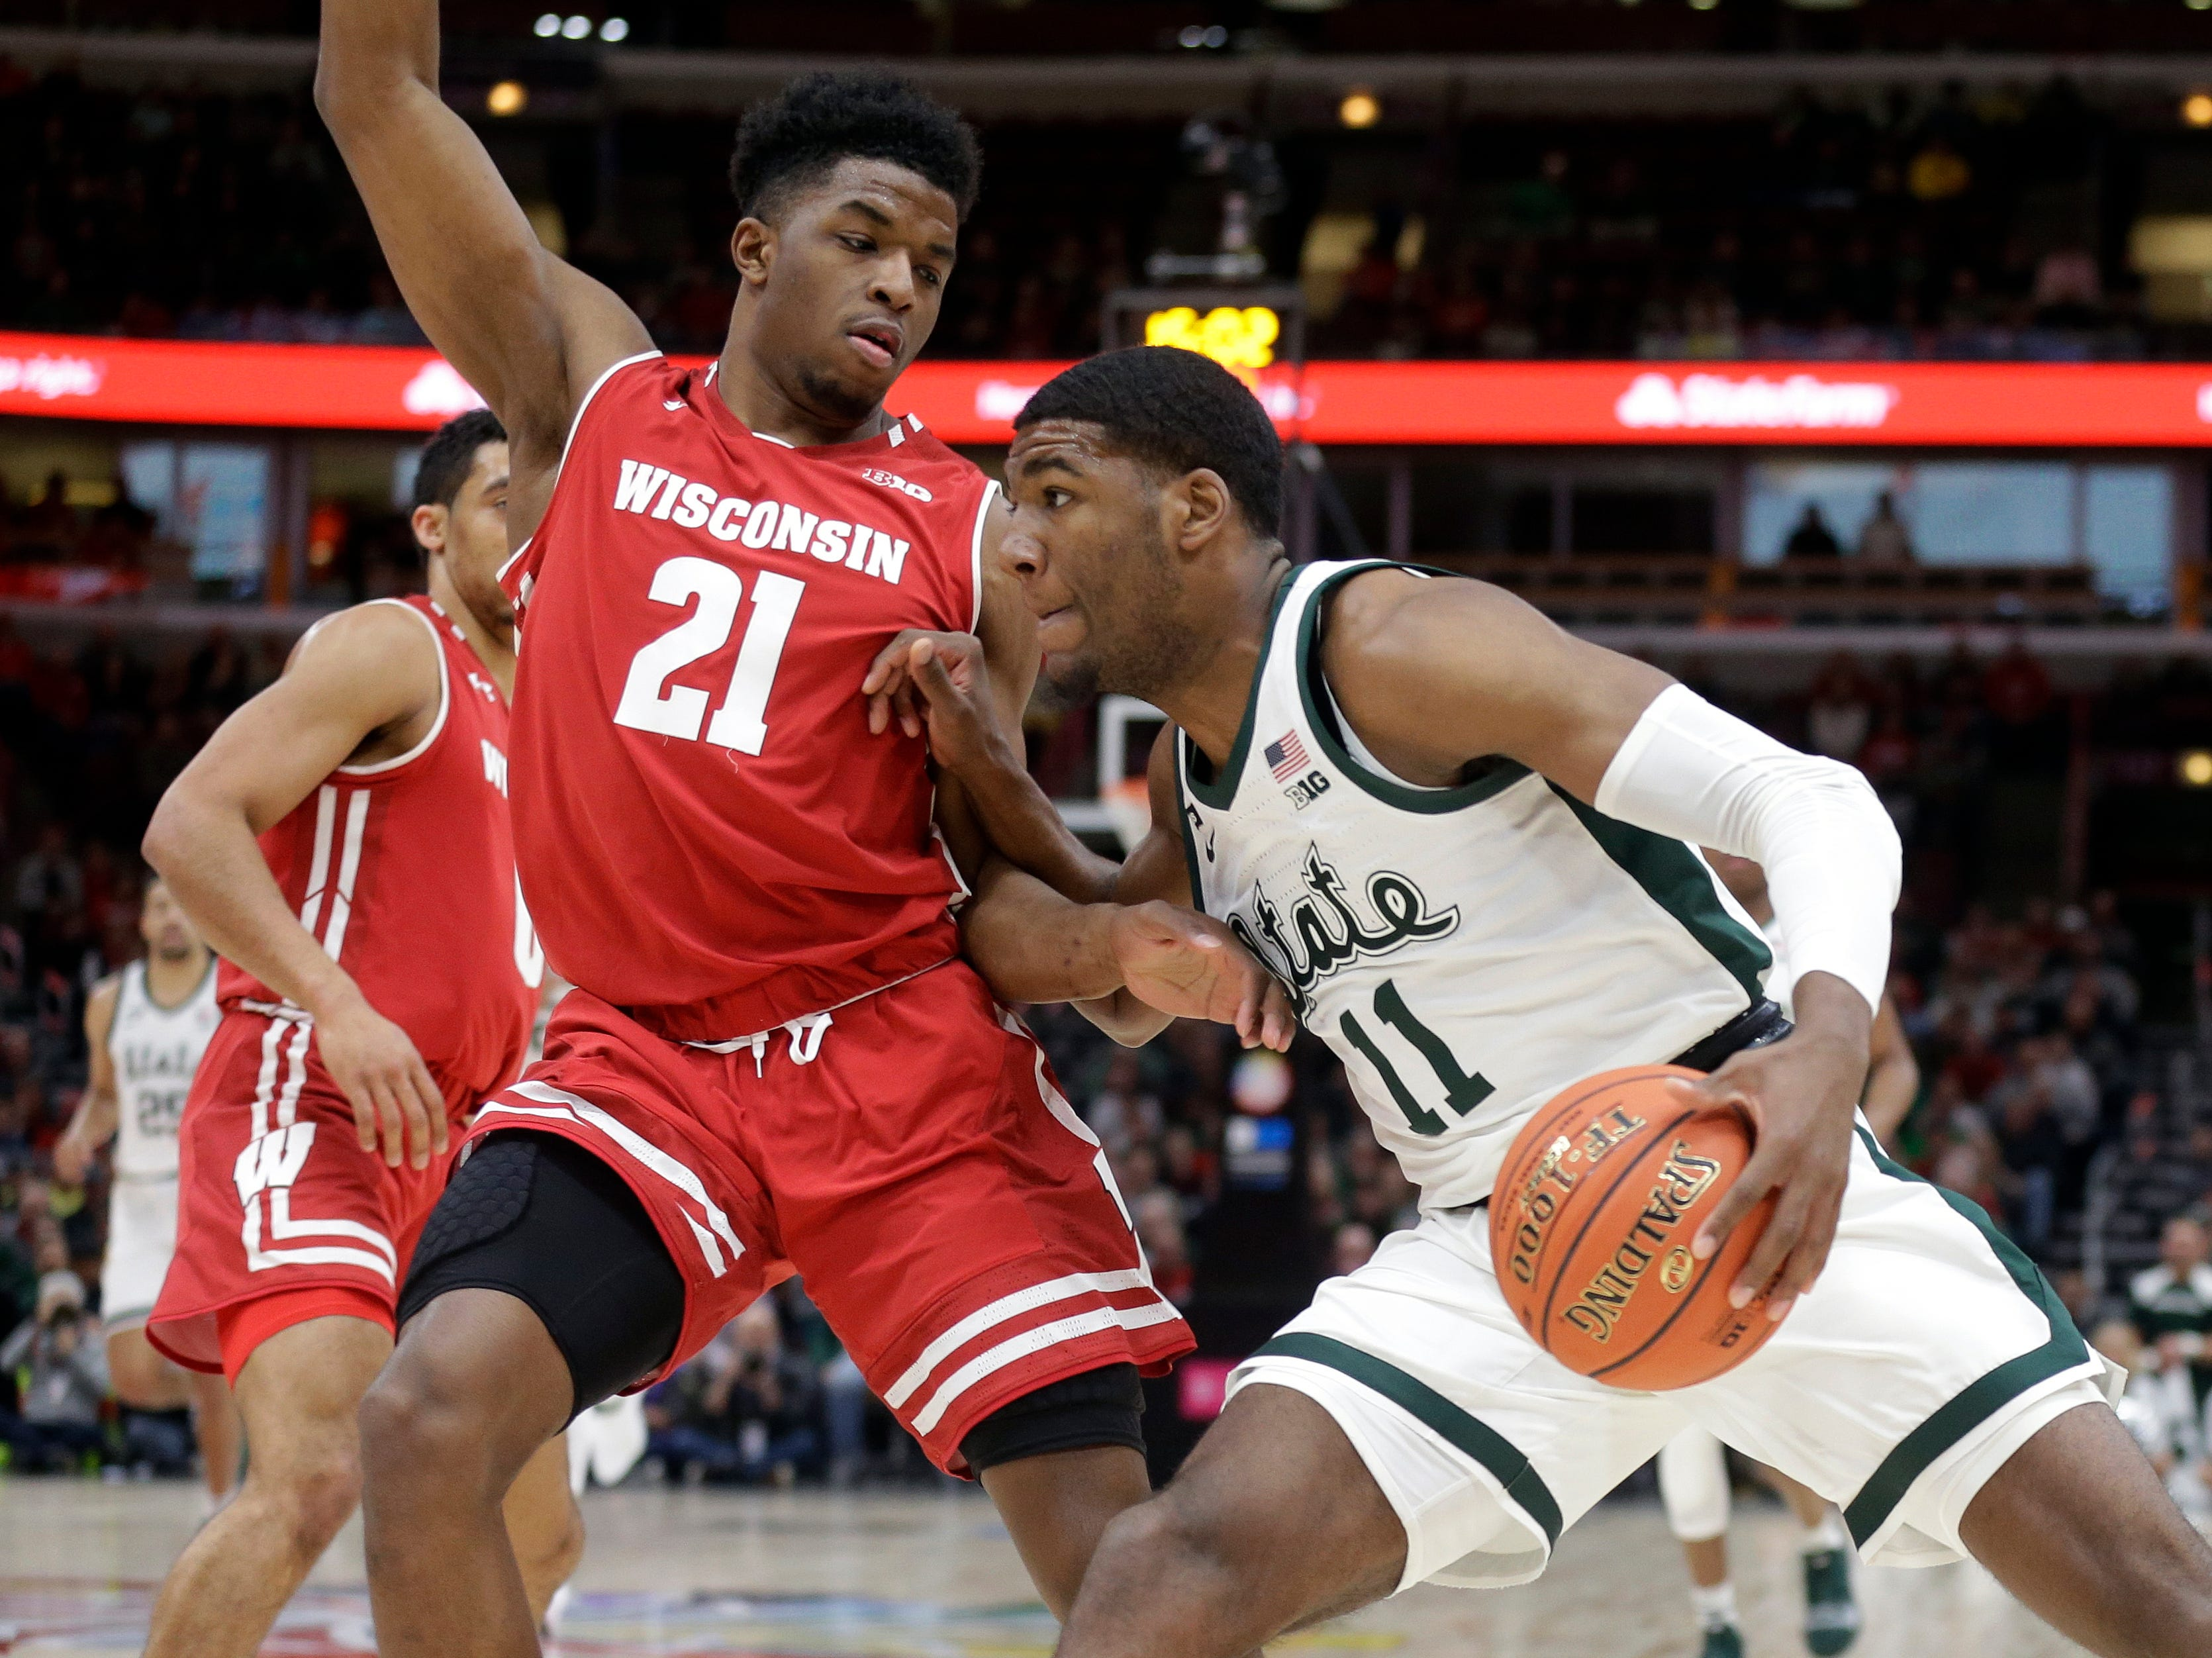 Michigan State's Aaron Henry (11) drives against Wisconsin's Khalil Iverson (21) during the first half of an NCAA college basketball game in the semifinals of the Big Ten Conference tournament, Saturday, March 16, 2019, in Chicago.